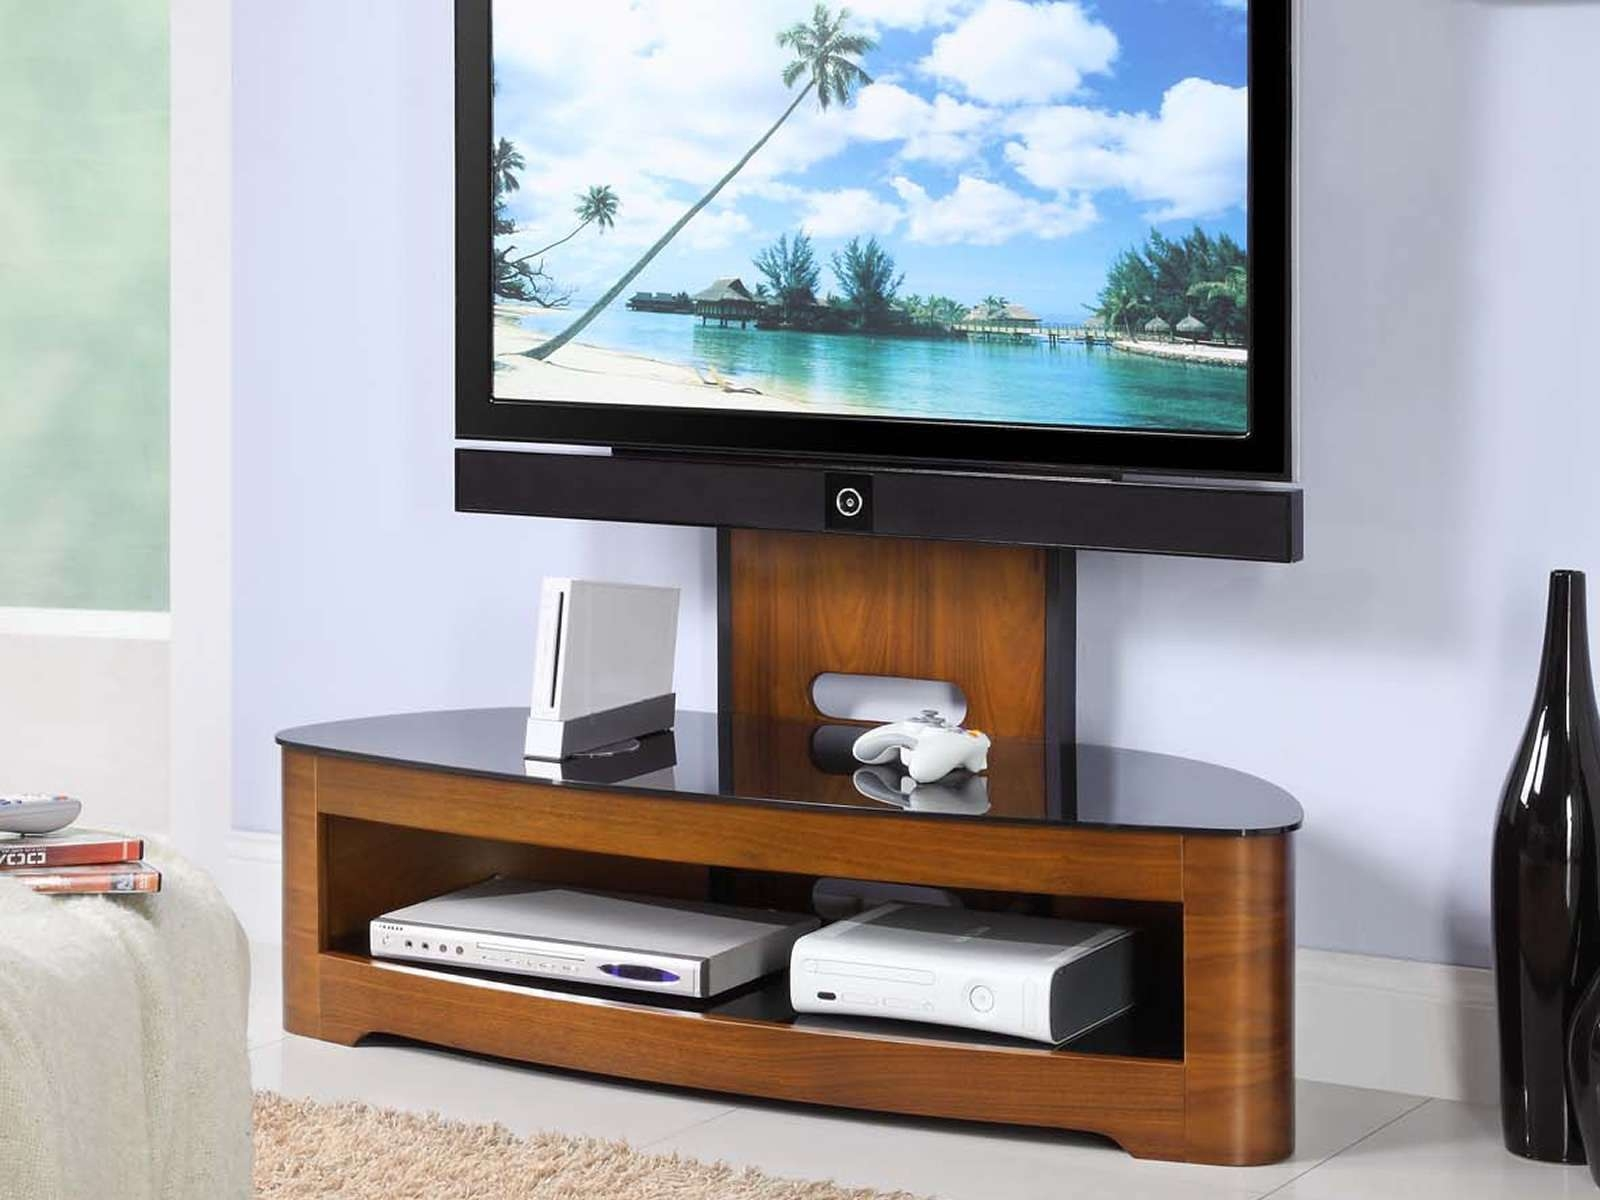 Home Decor: Bautiful Tv Stands With Flat Panel Mounts Combine Intended For Modern Tv Stands With Mount (View 14 of 15)